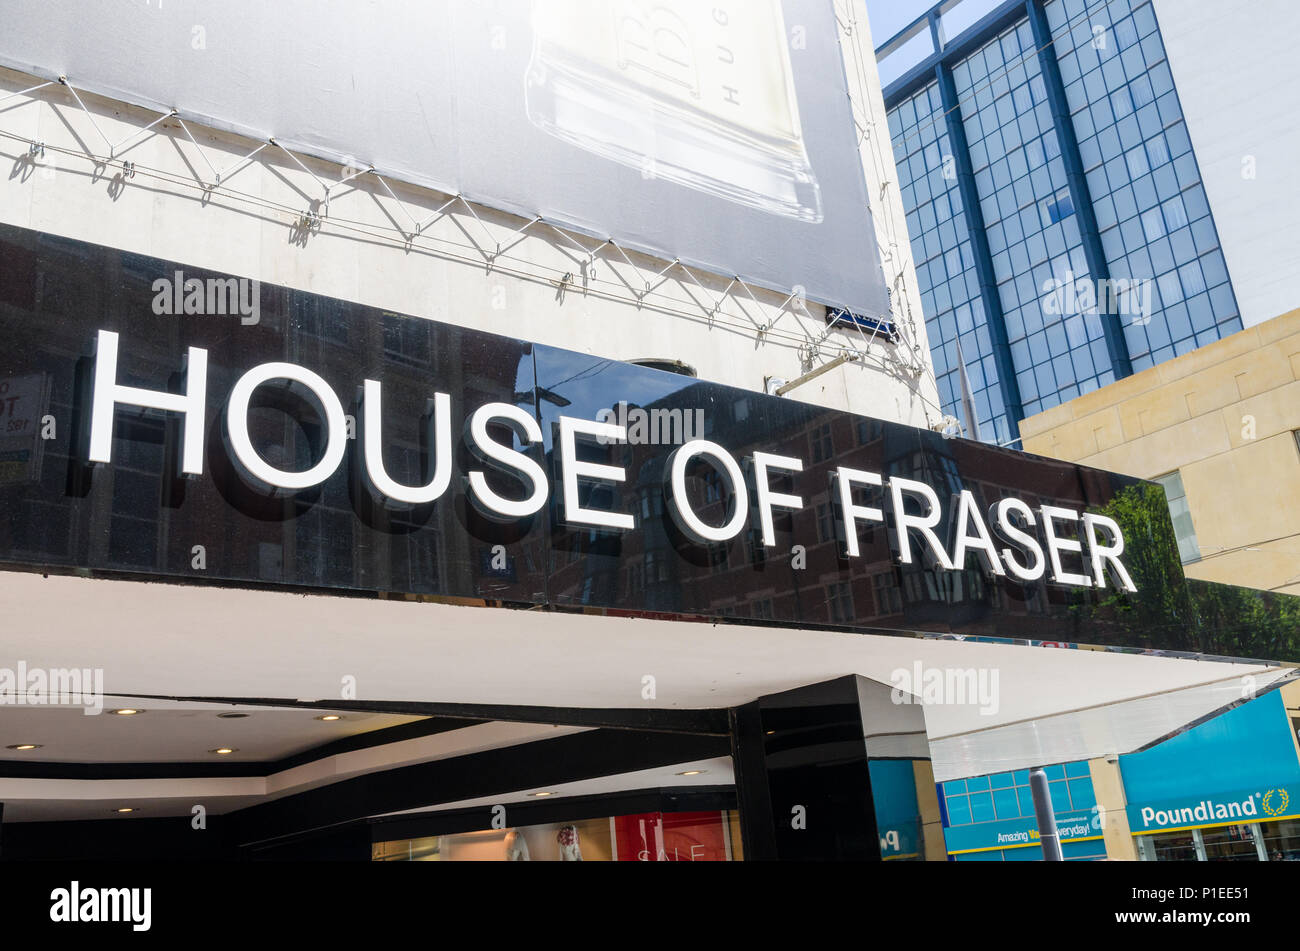 The House of Fraser department store in Corporation Street, Birmingham which has been listed for closure - Stock Image